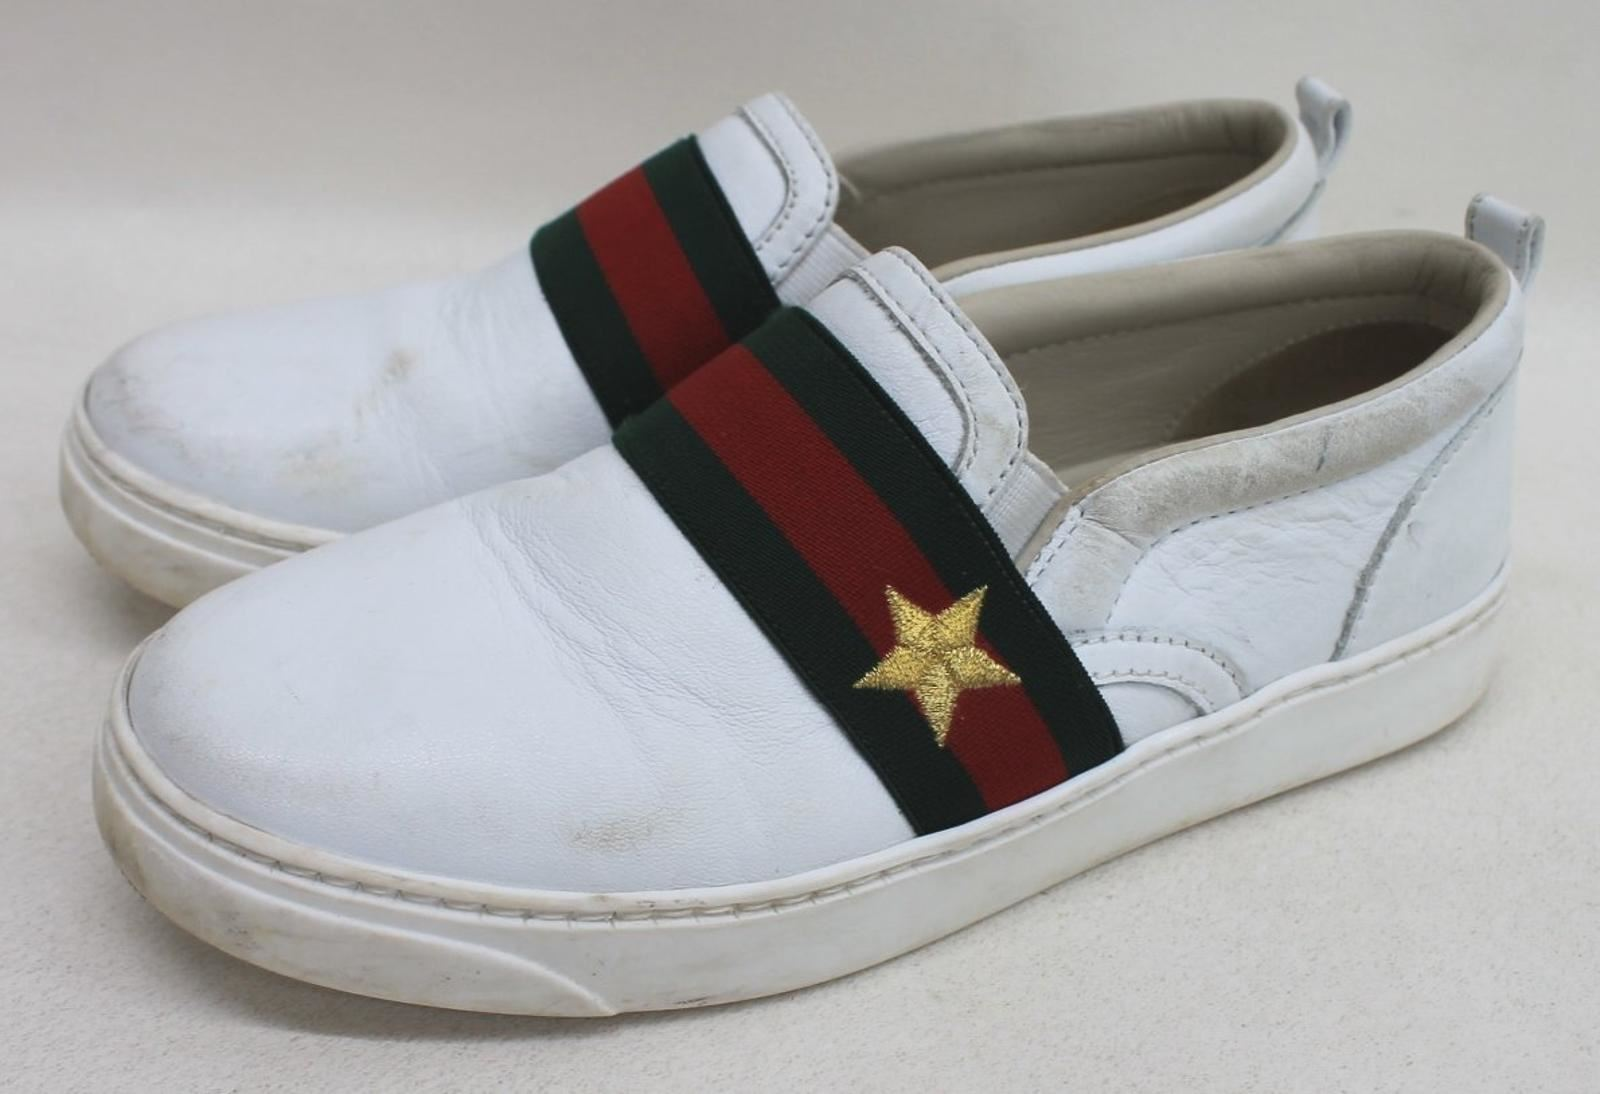 49b866dfe GUCCI Boys White Leather Green Red Web Star Slip On Trainers Size UK12 EU30